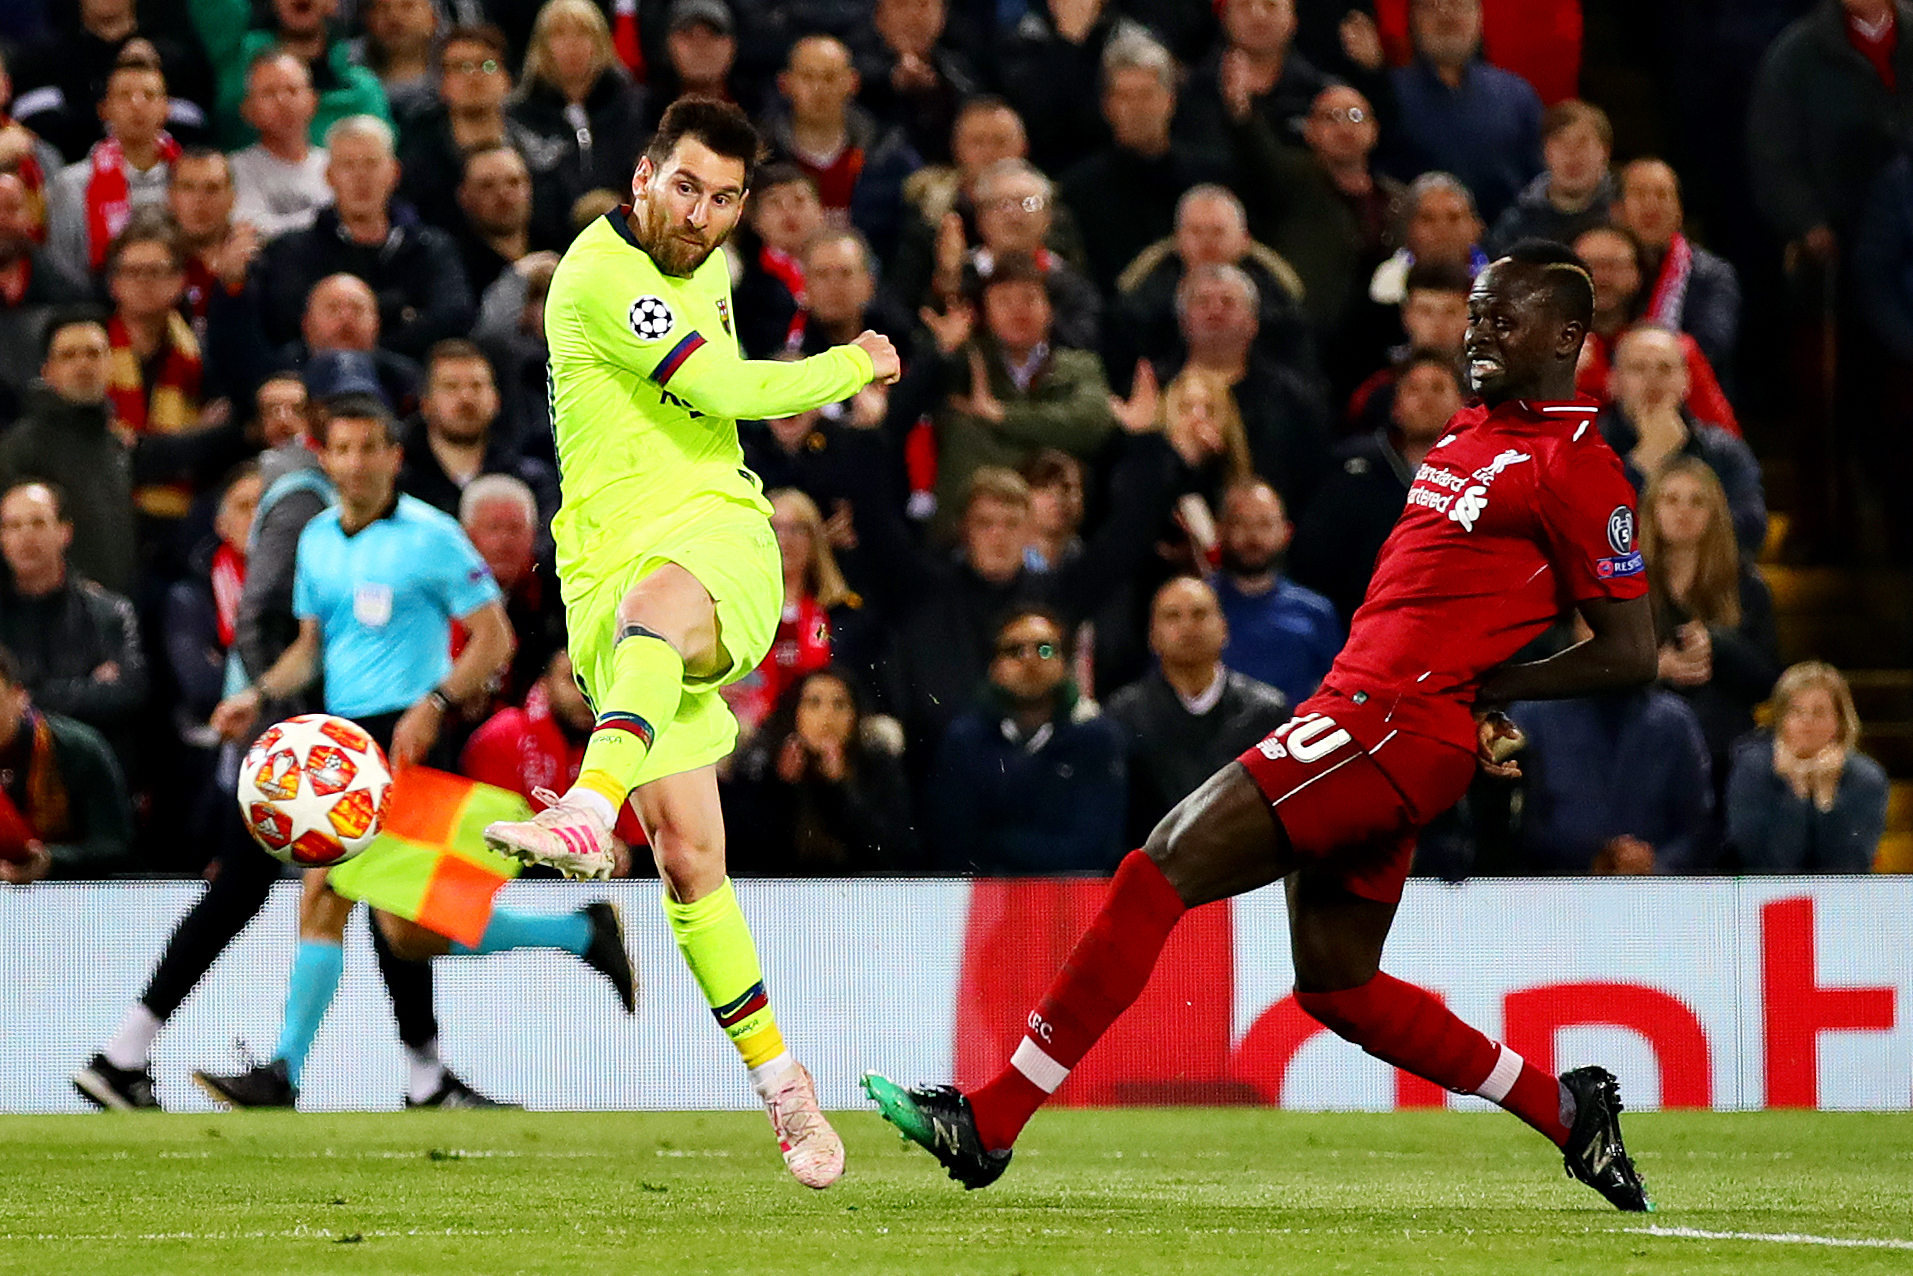 Barcelona to pay £108m for Sadio Mane to replace Messi | PEAKVIBEZ